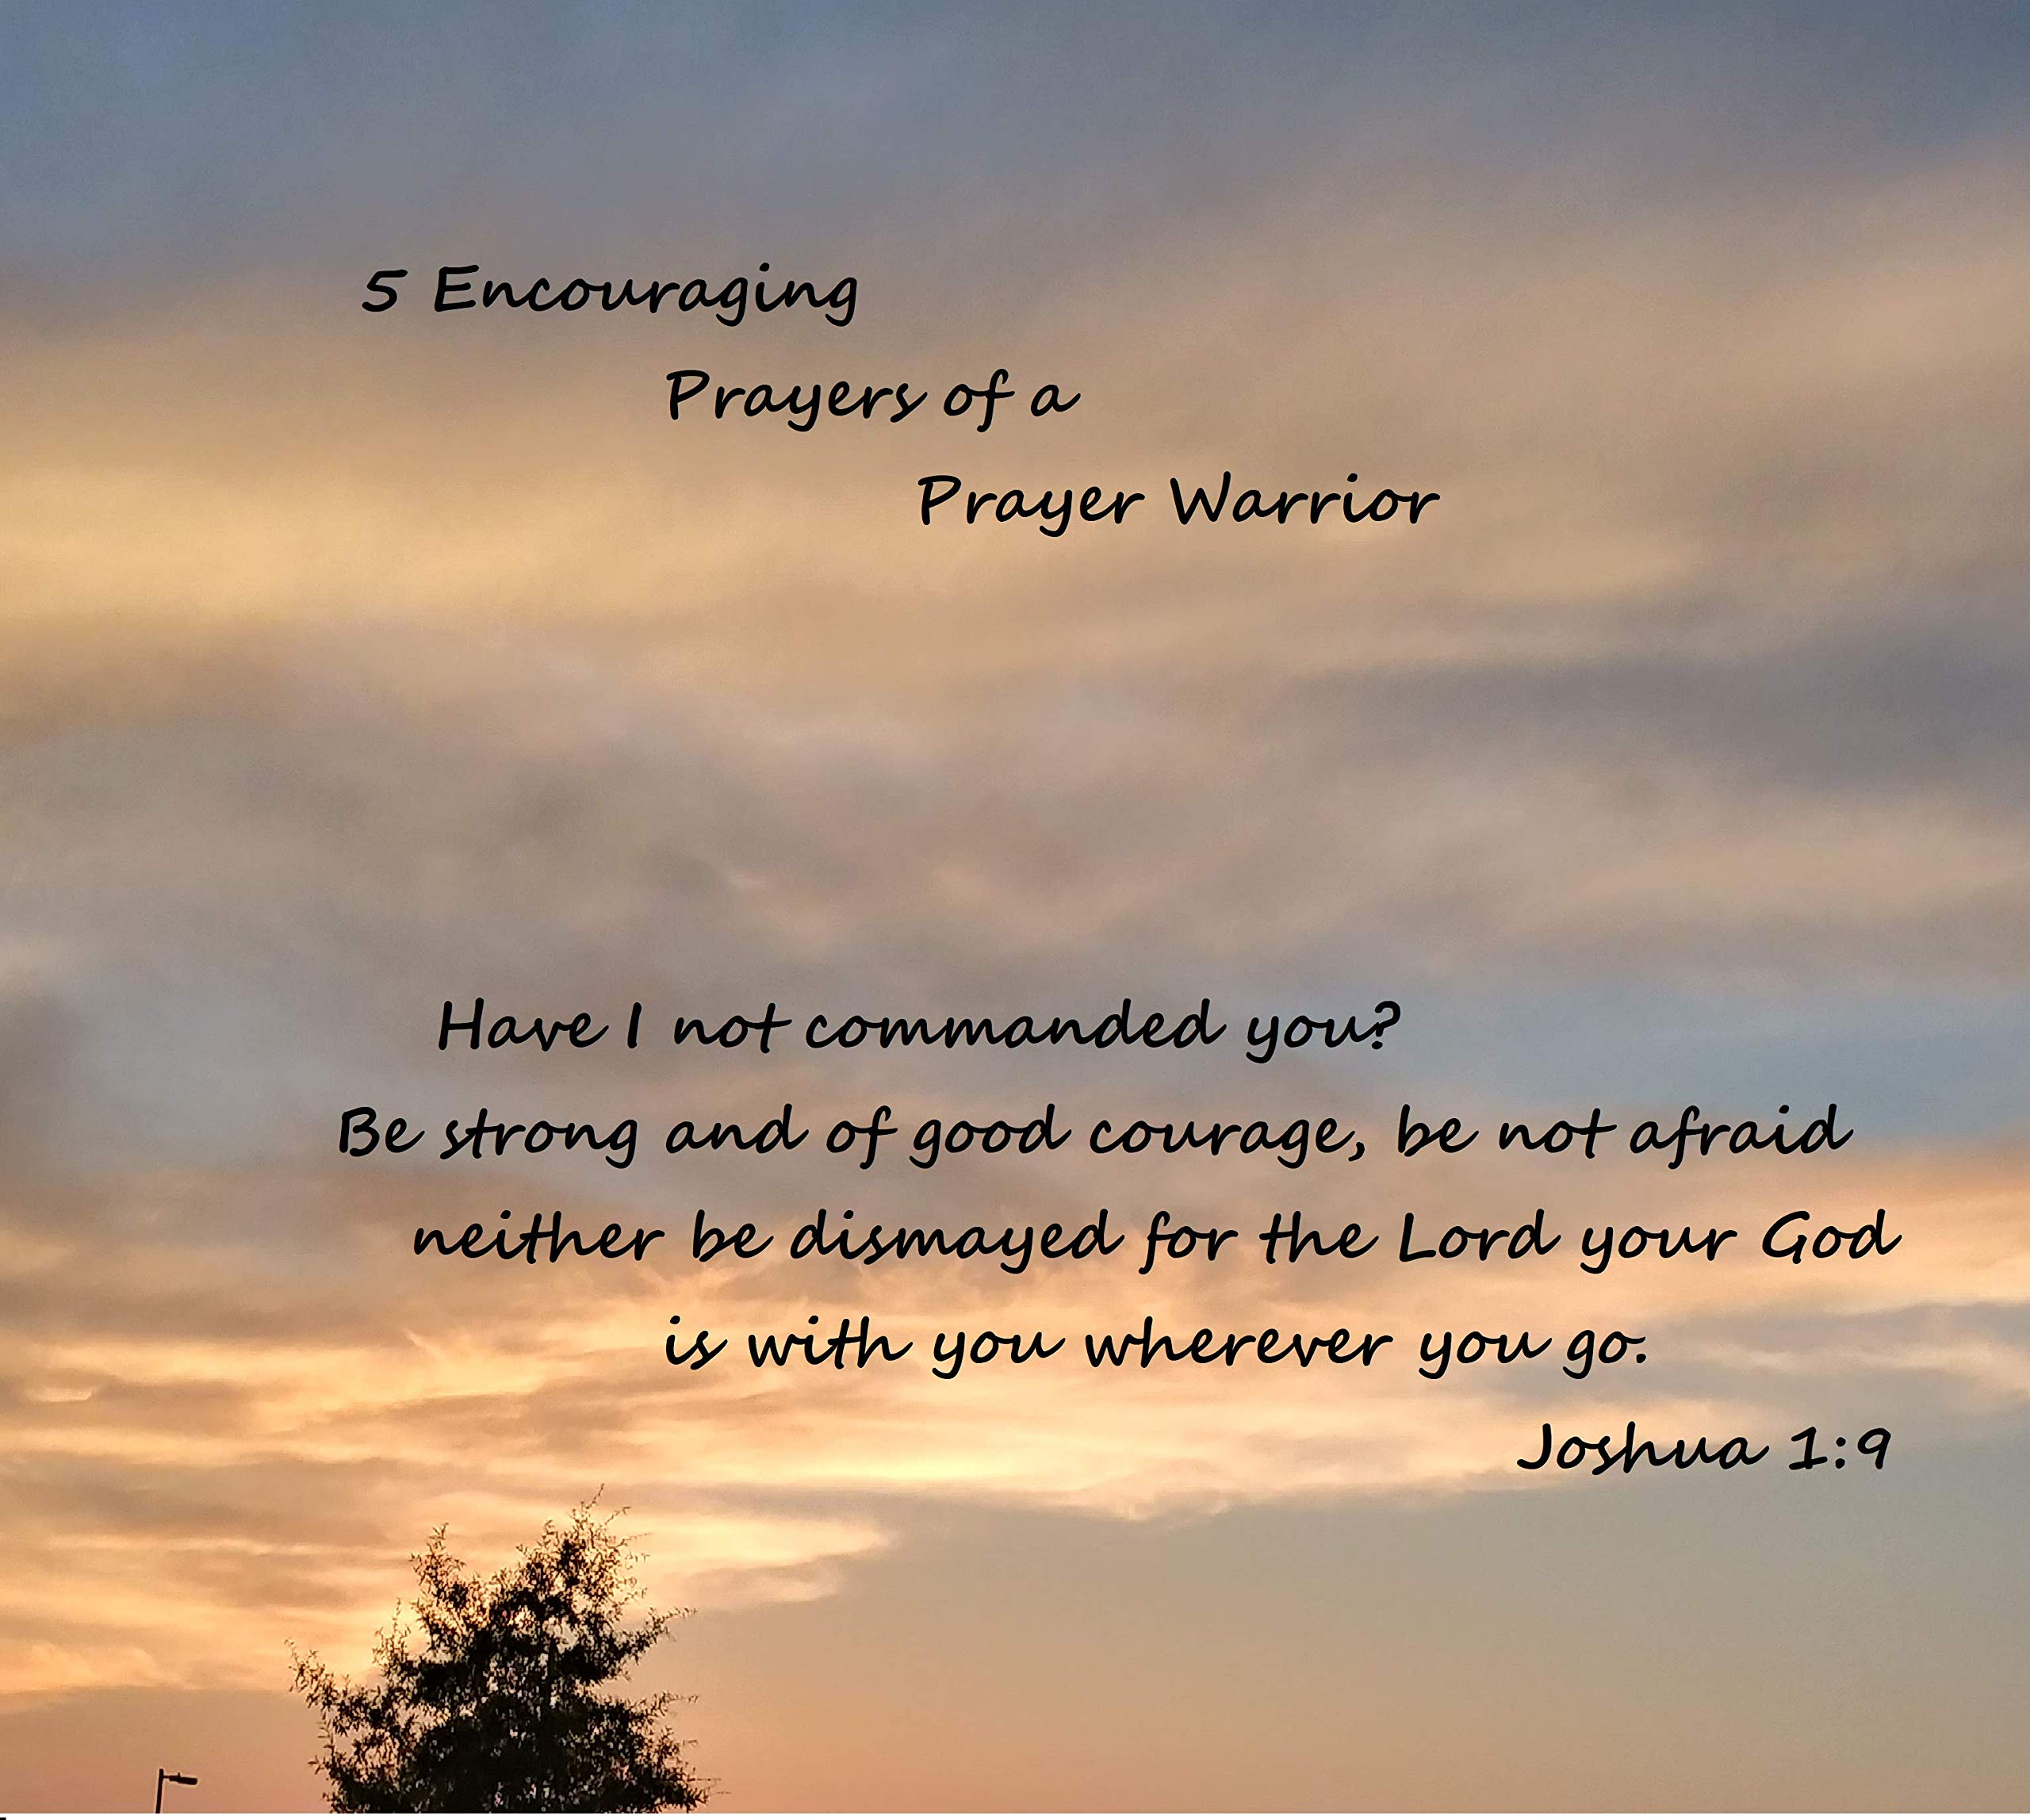 Book of Prayers and Encouragement: From the Heart of a Prayer Warrior